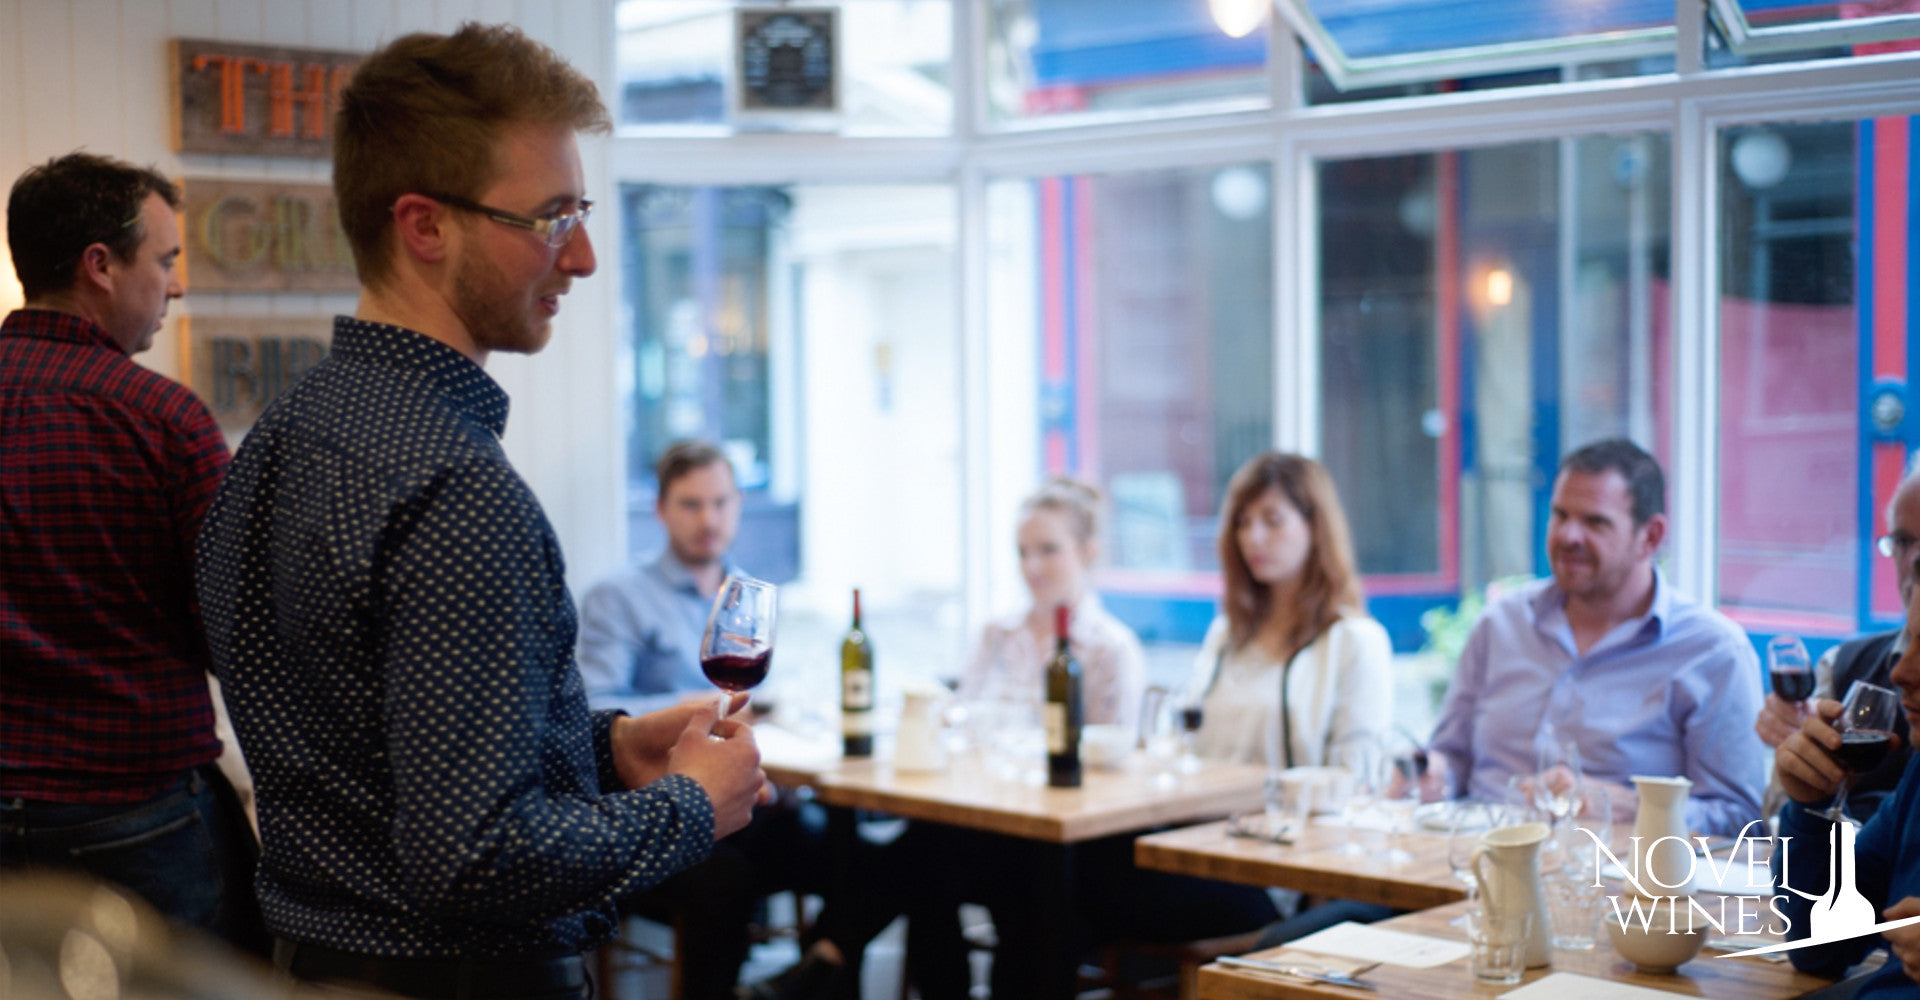 Wine Tasting with Ben Franks from Novel Wines